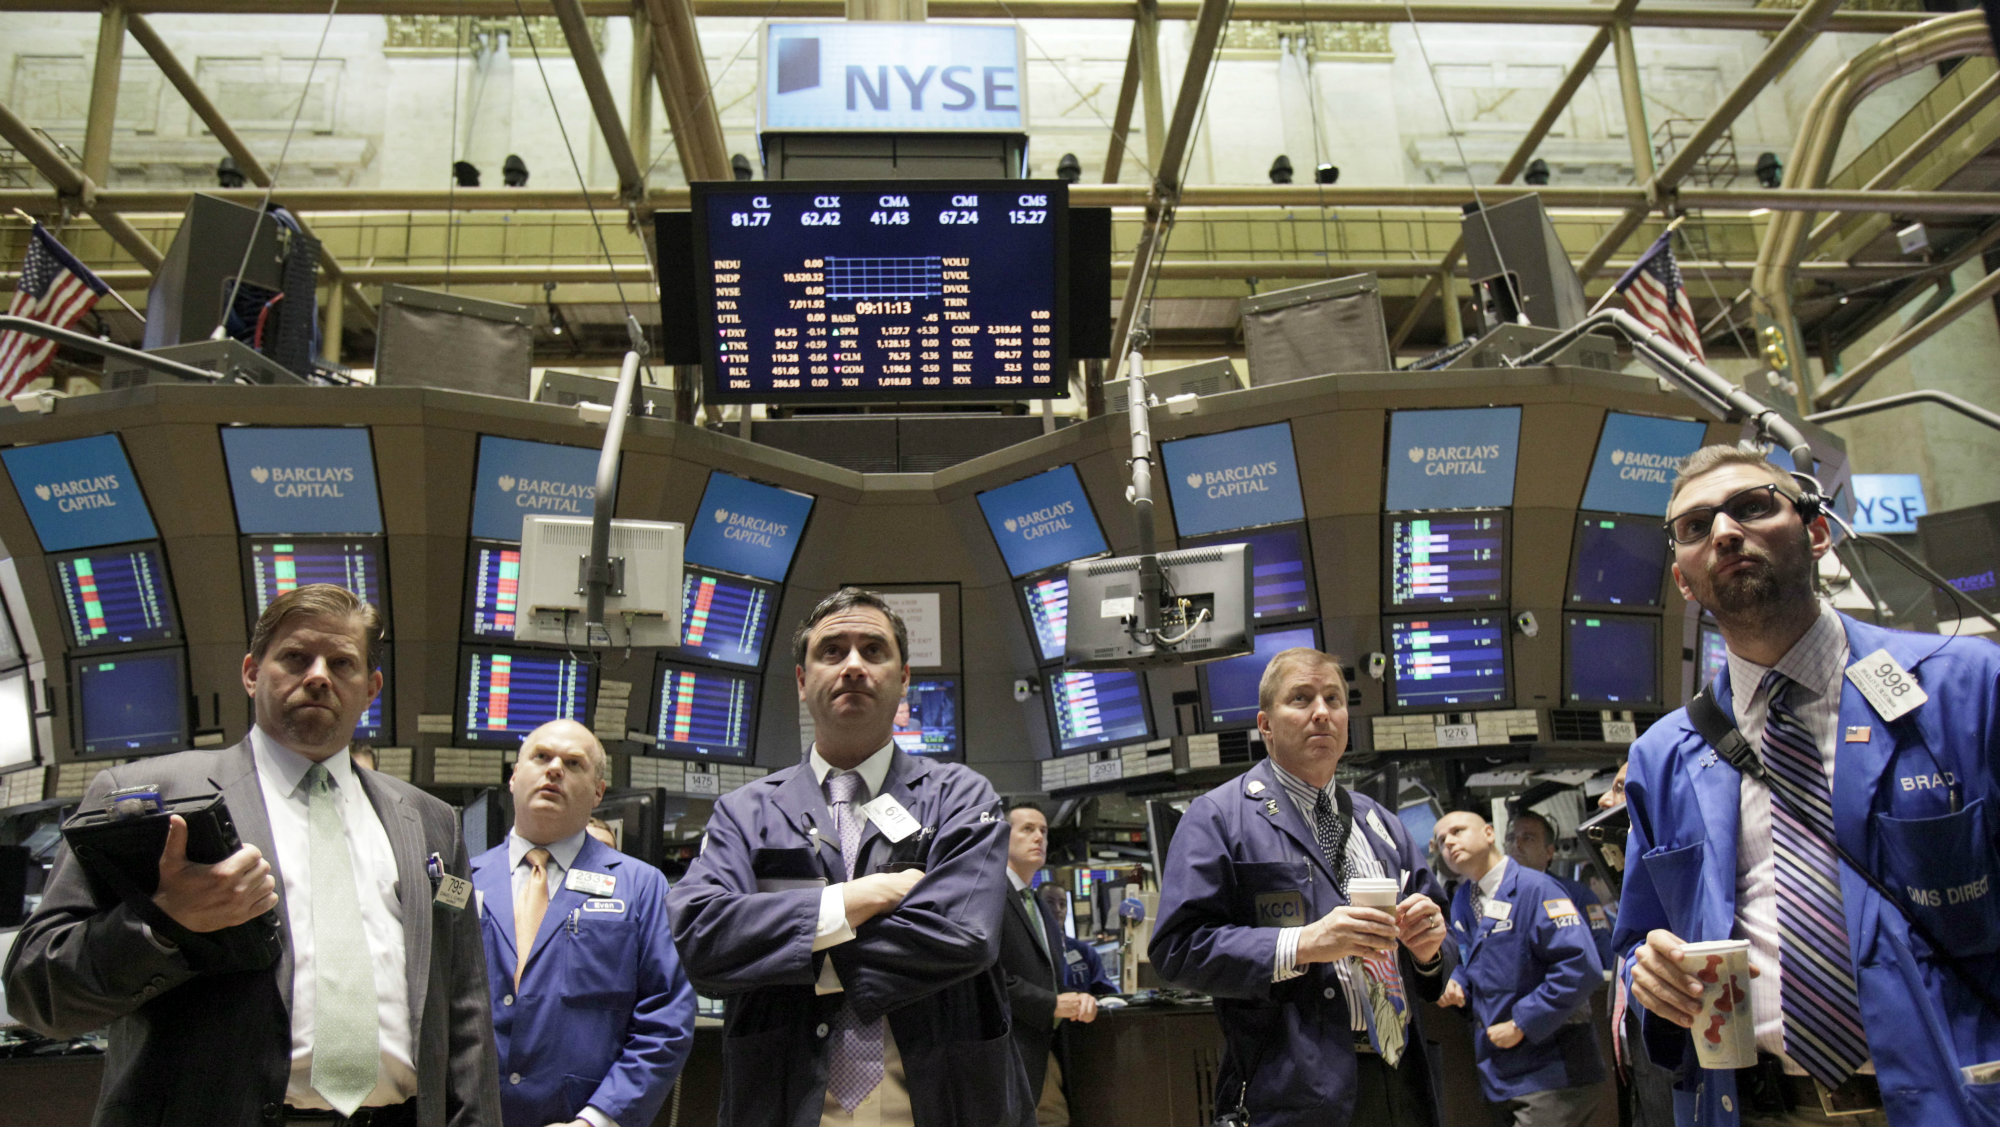 Traders gather on the floor of the New York Stock Exchange